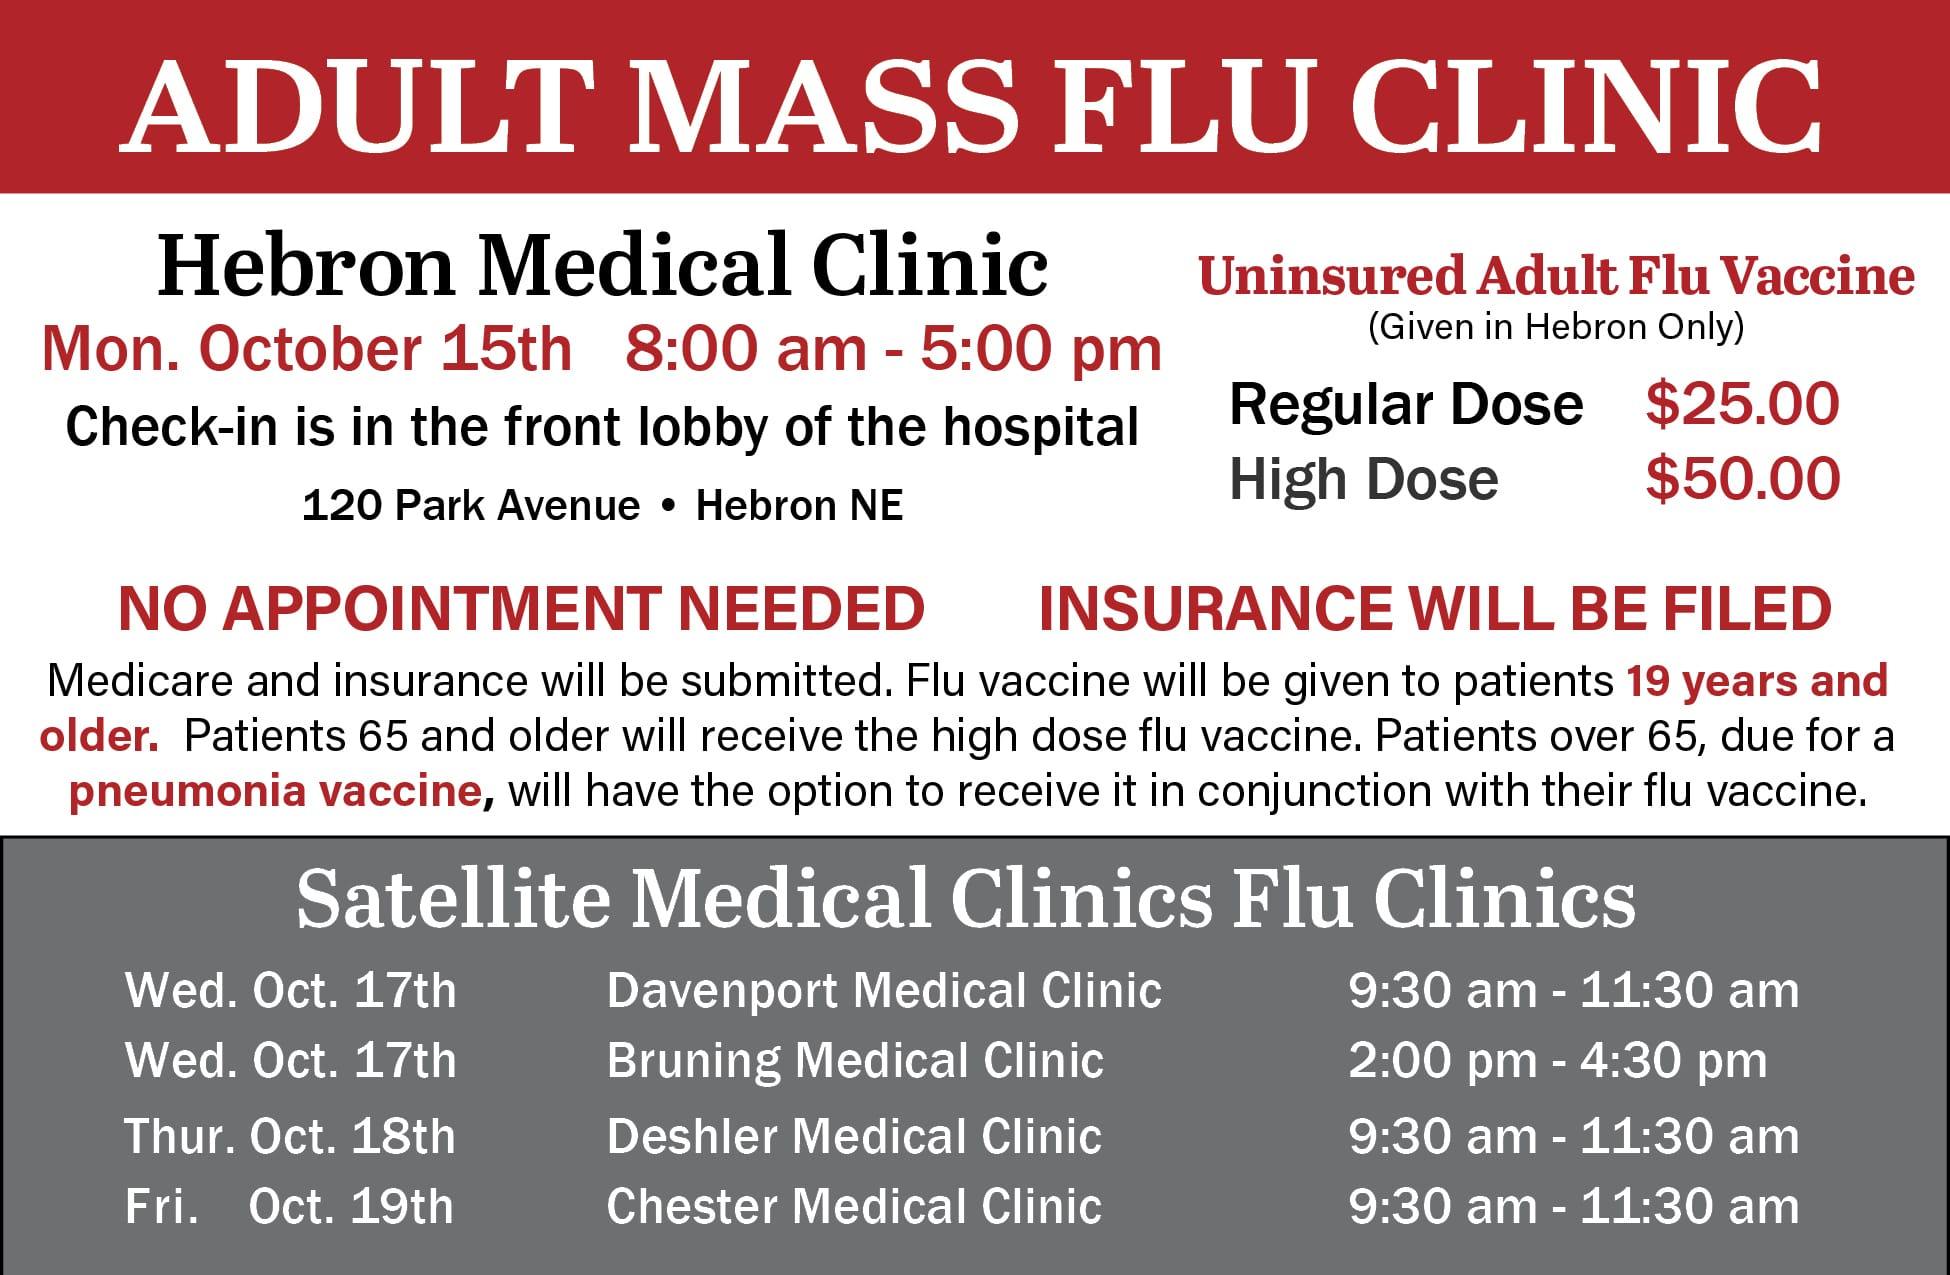 Adult Flu Clinic - Bruning